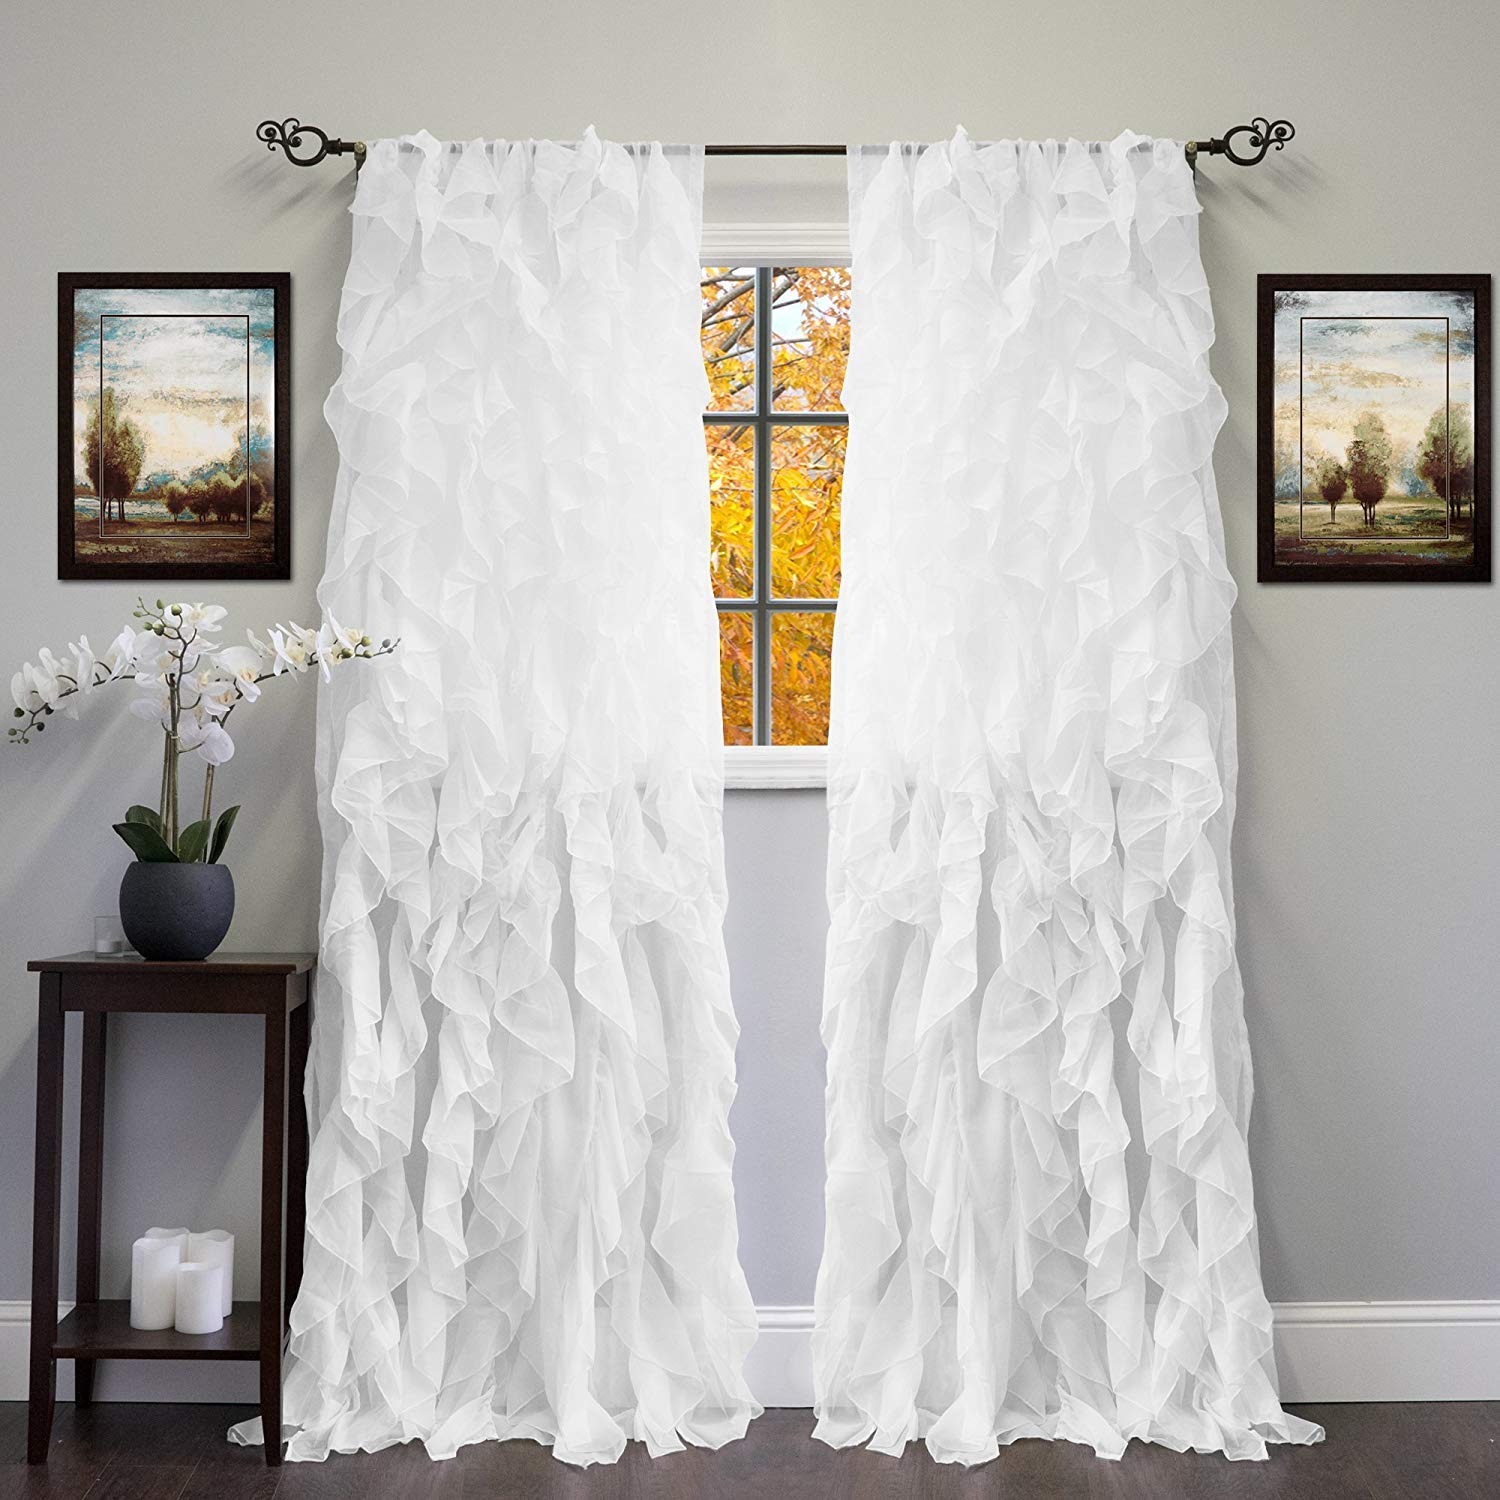 Linens And More 2 Panel Window Sheer Voile Vertical Ruffled Waterfall Curtains84 inches Long x 50 inches Wide (White)